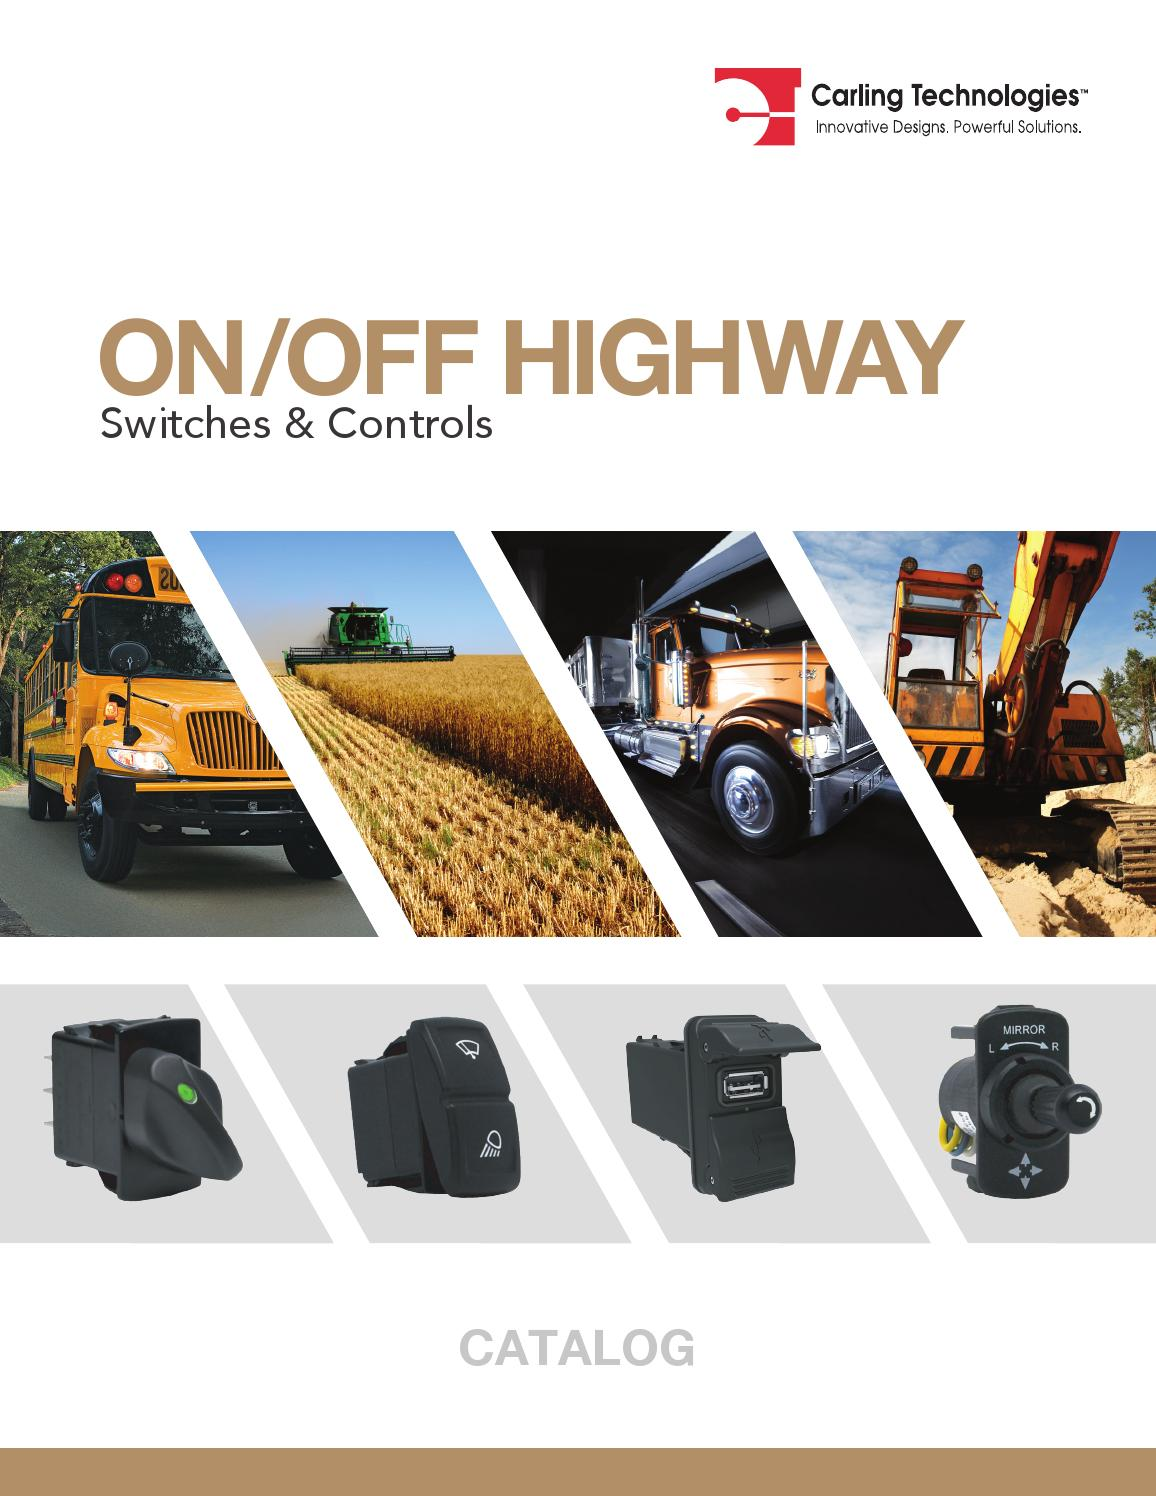 Carling Technologies On Off Highway Catalog By Merchlin Issuu Round Rocker Switch Led Spst Onoff 12vdc Amber